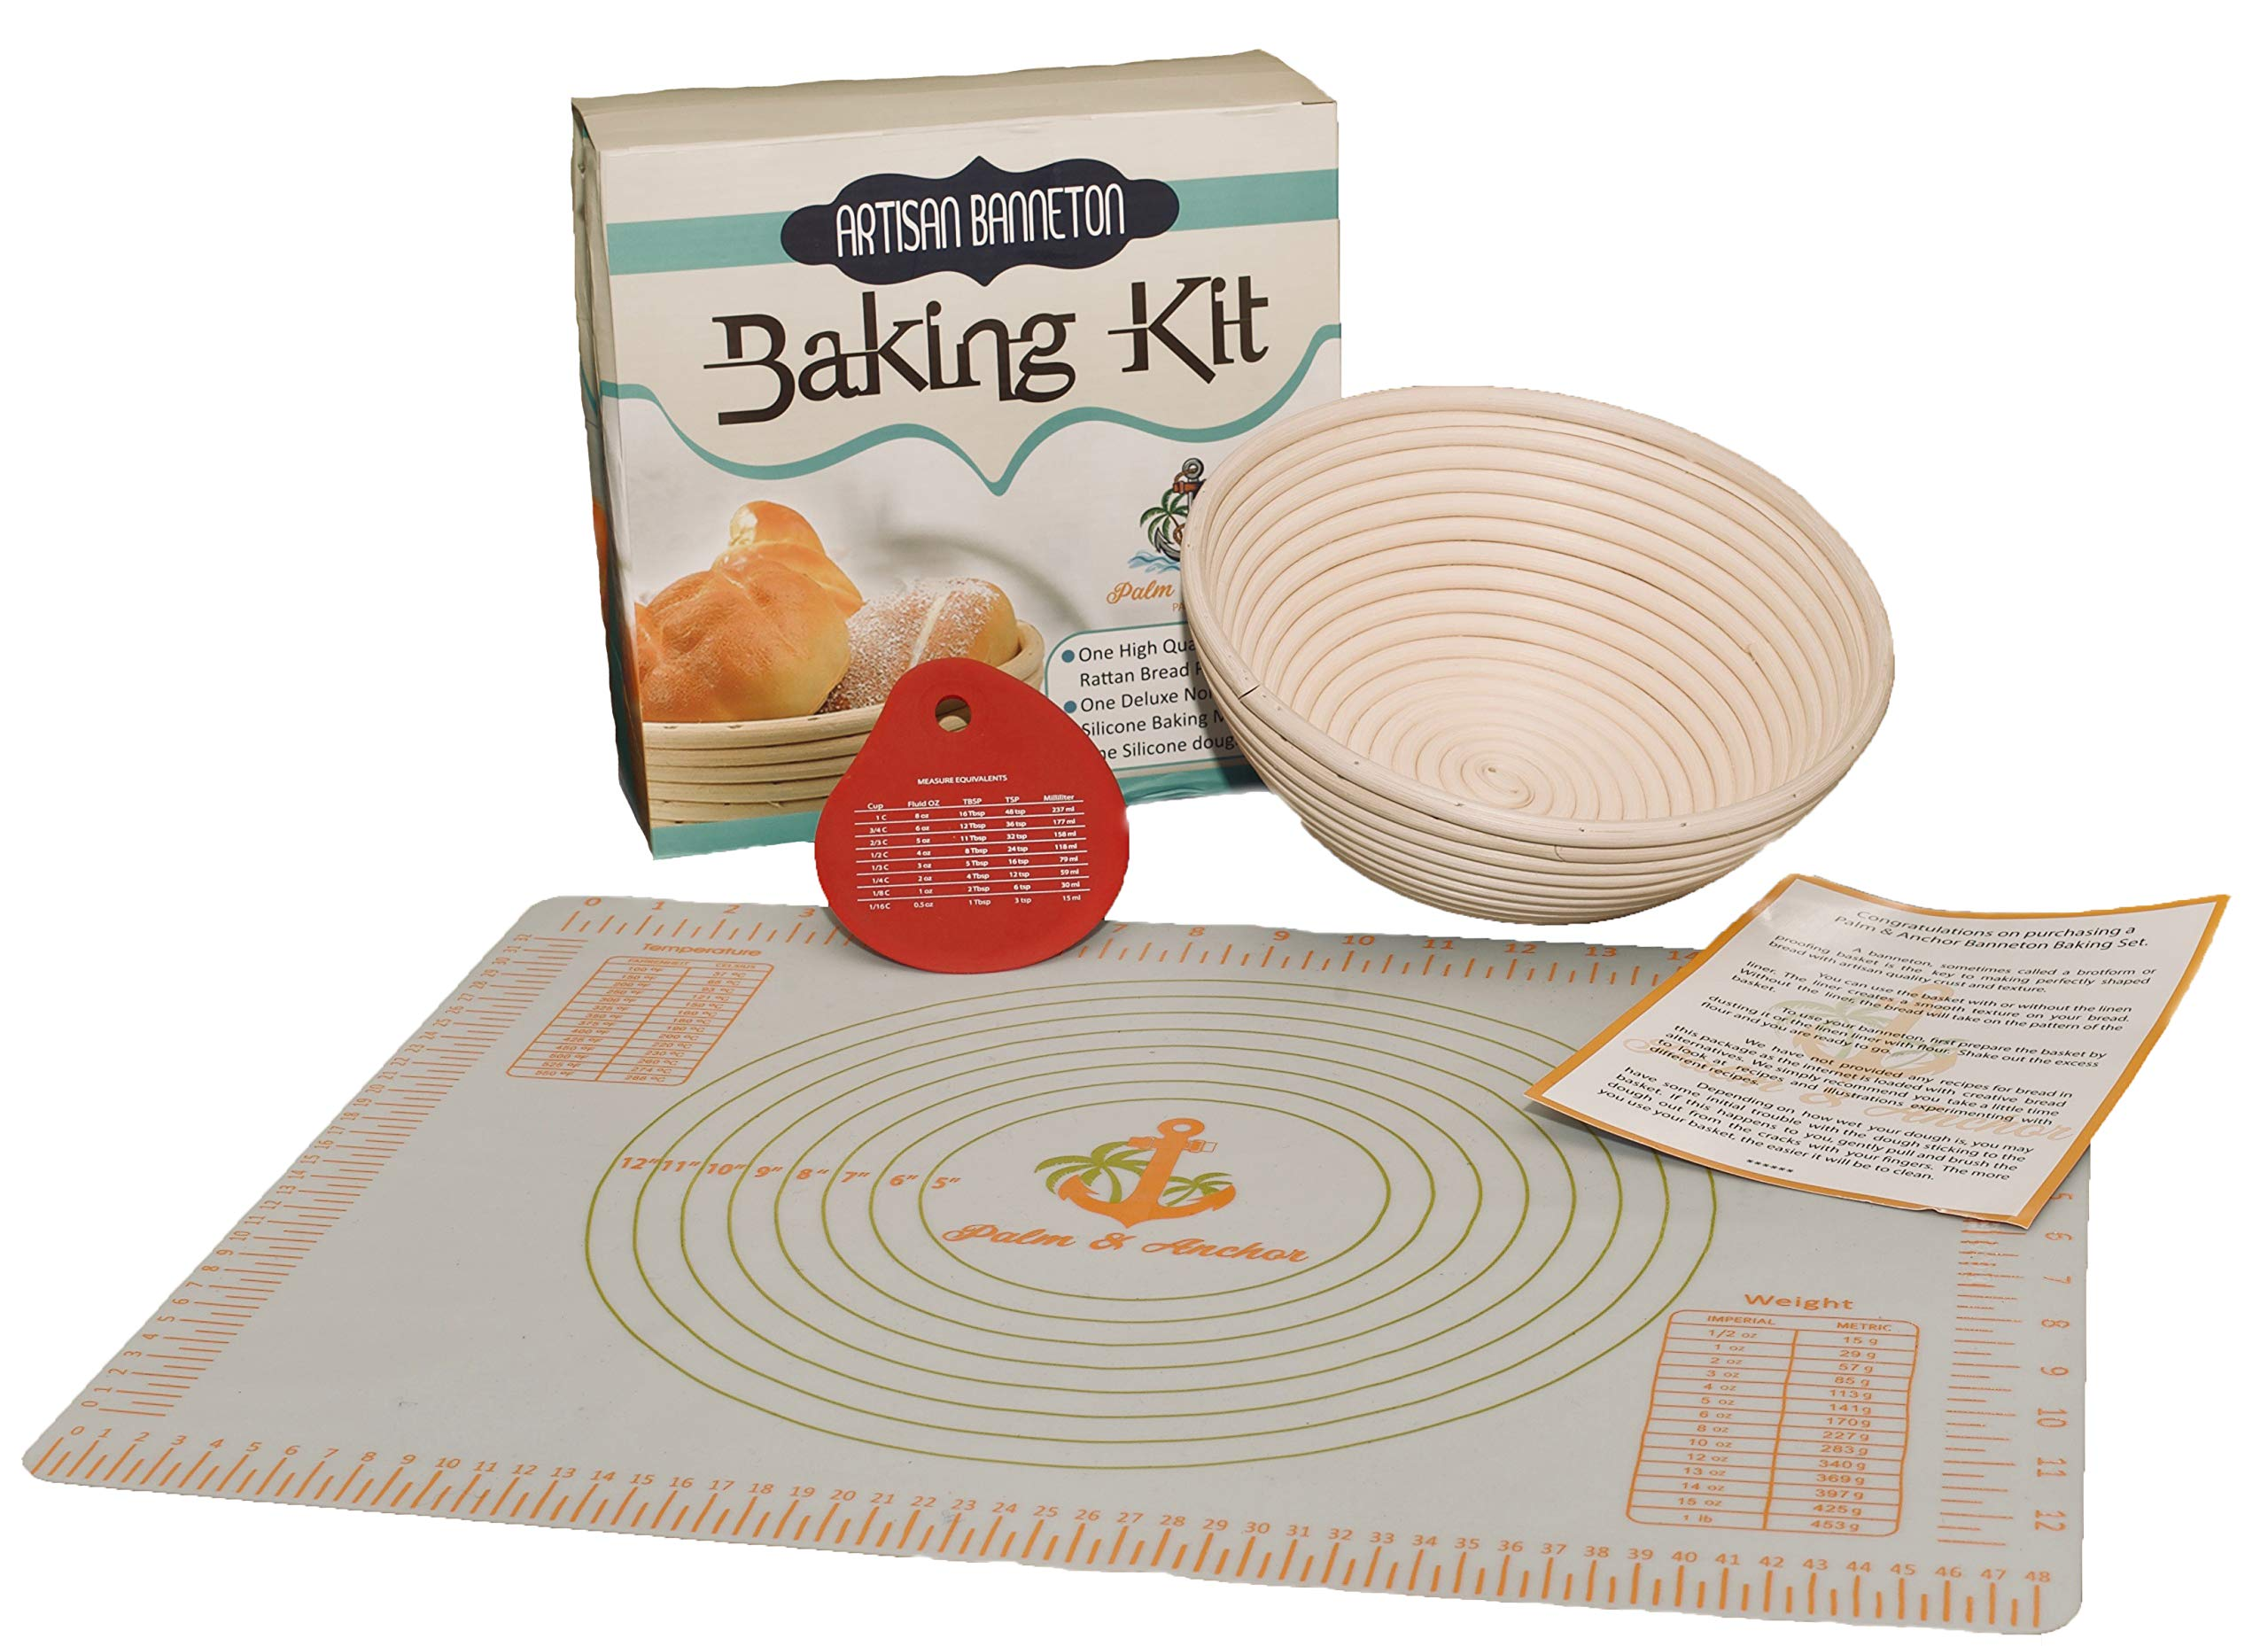 Premium Banneton Bread Proofing Basket, 4 Piece Bread Baking Kit with 9 Inch Dough Proofing Basket + Non-Stick, Silicone Baking Mat + Silicone Dough Scraper + Linen liner by Palm & Anchor by Palm & Anchor Pantry